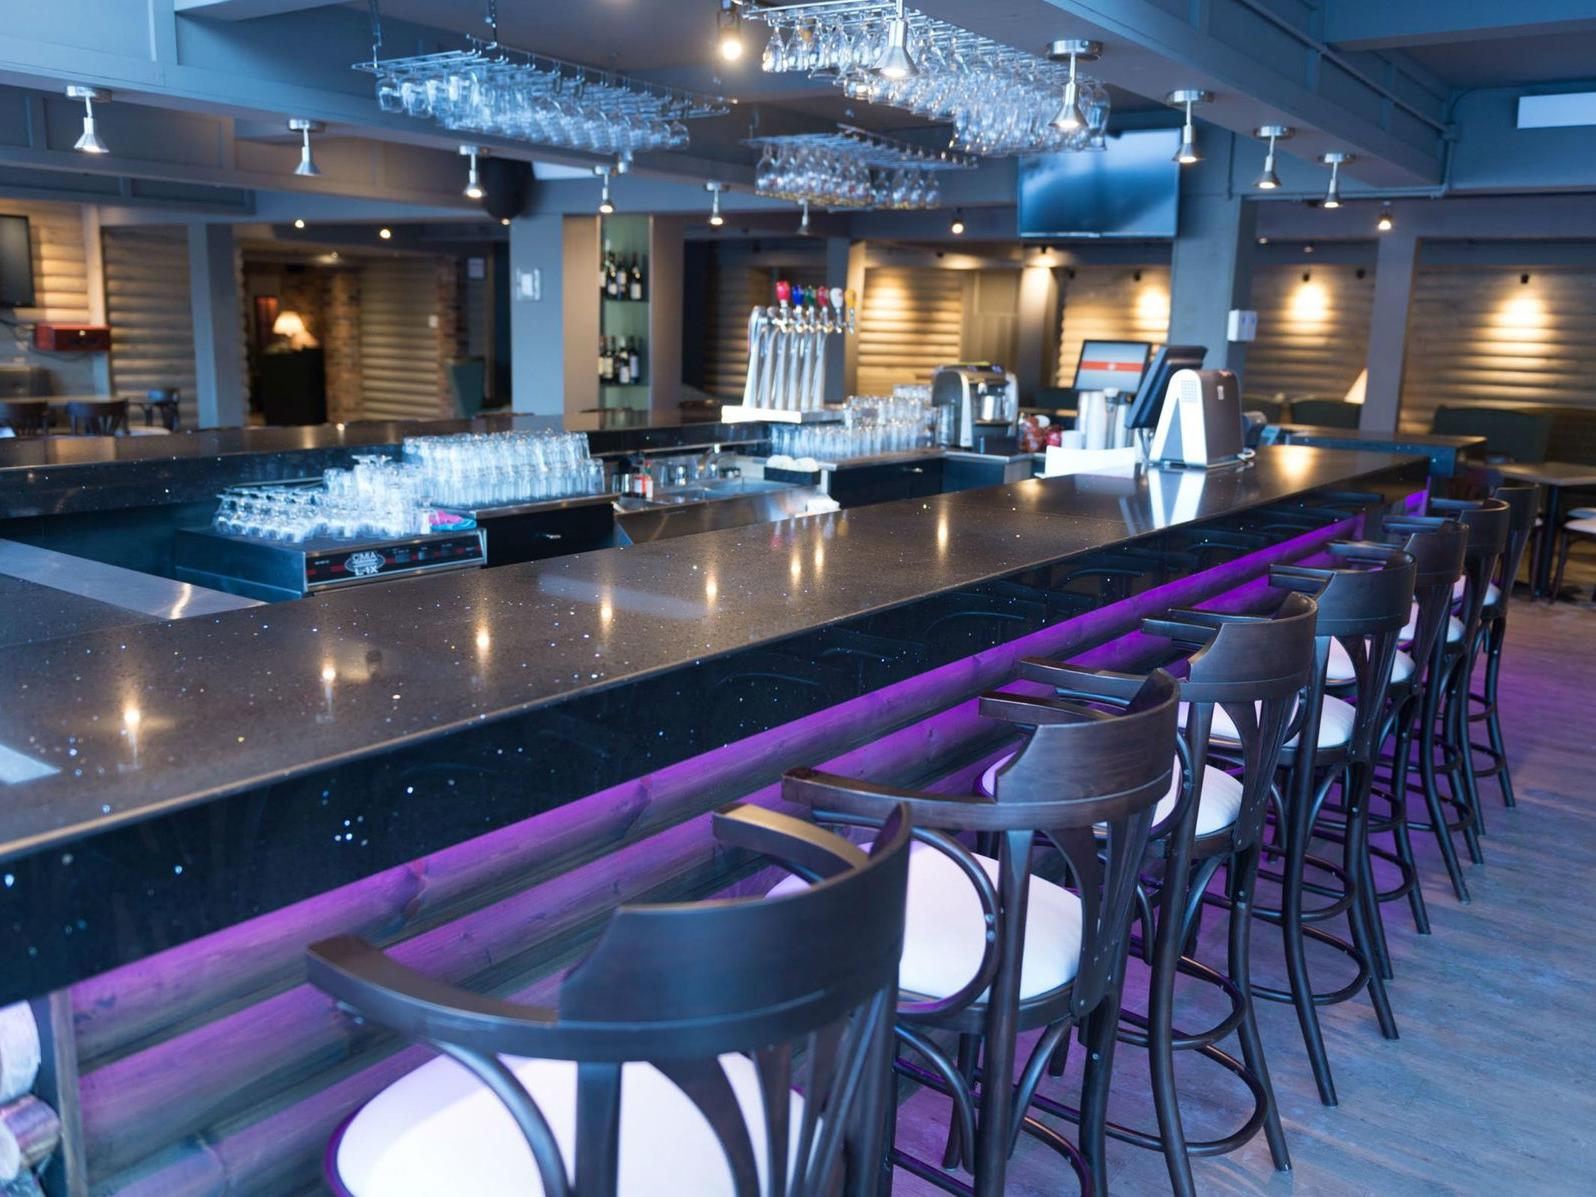 Modern bar area with purple neon under lighting